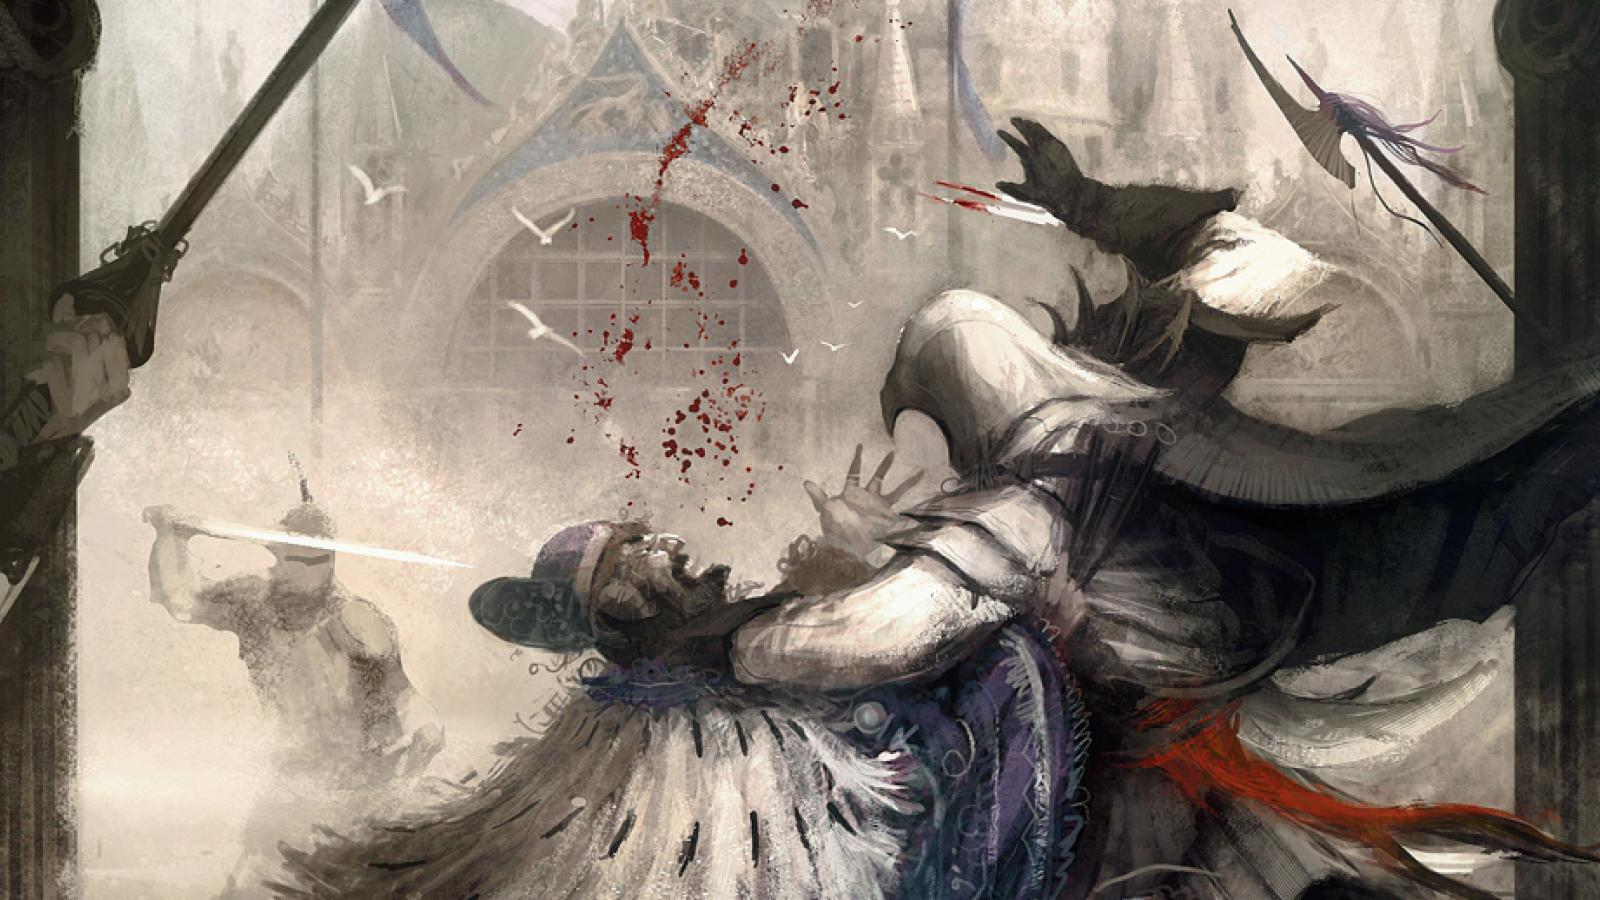 Stunning Assassin's Creed Artworks